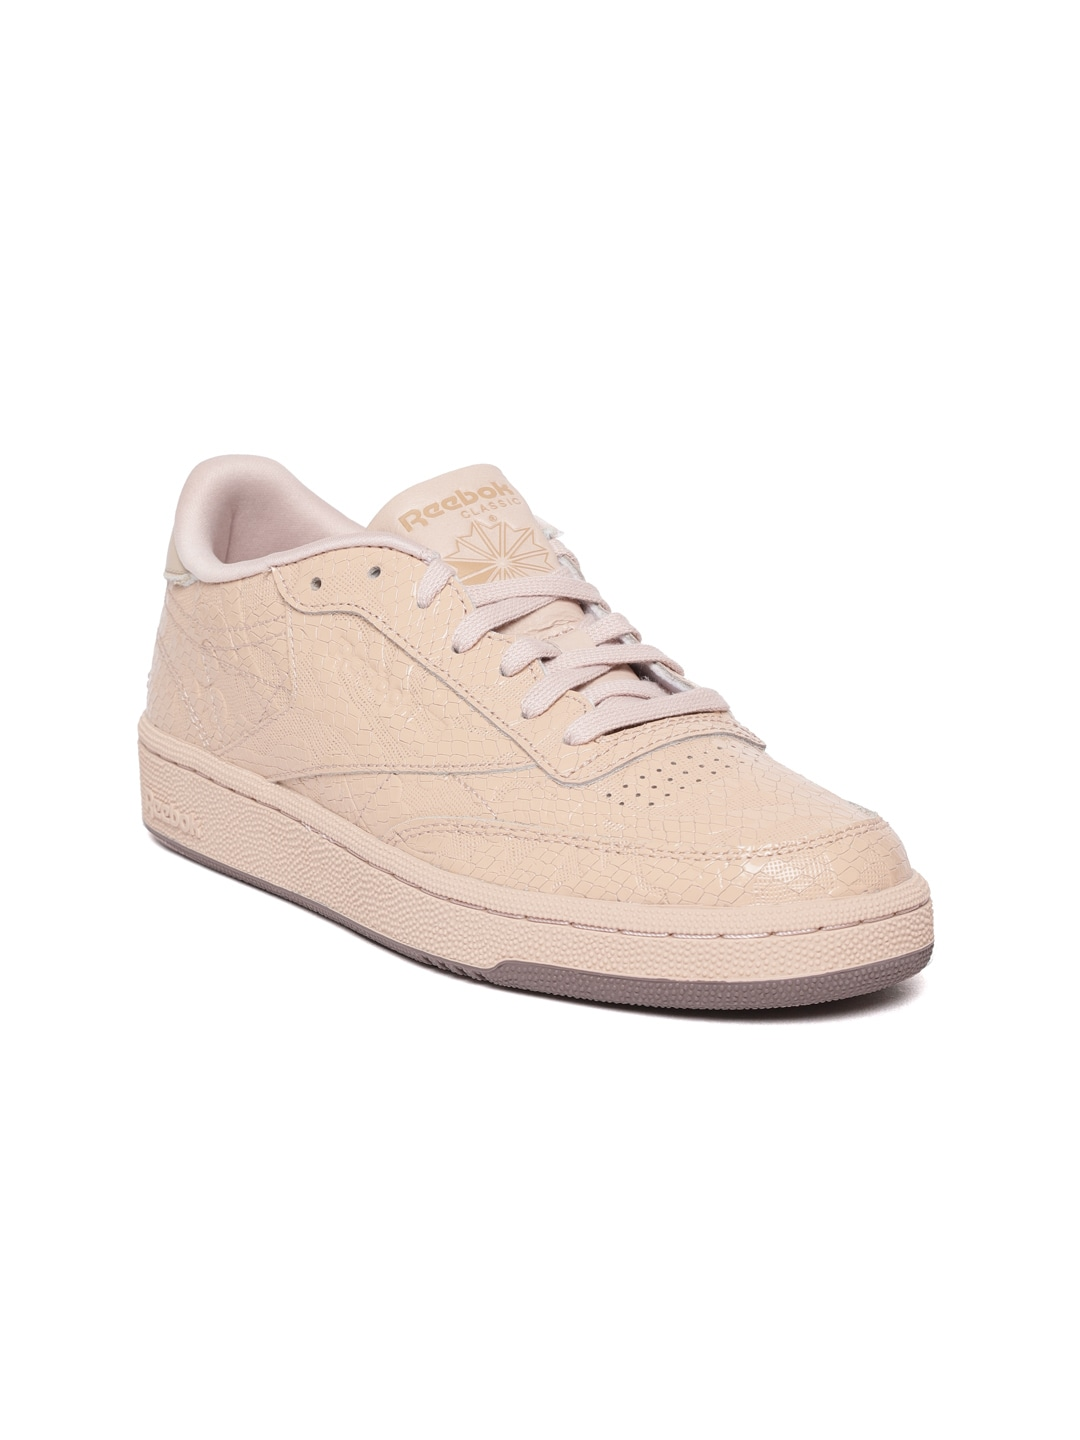 af075d76a Buy Reebok Classic Women Off White Club C 85 Vintage Leather ...